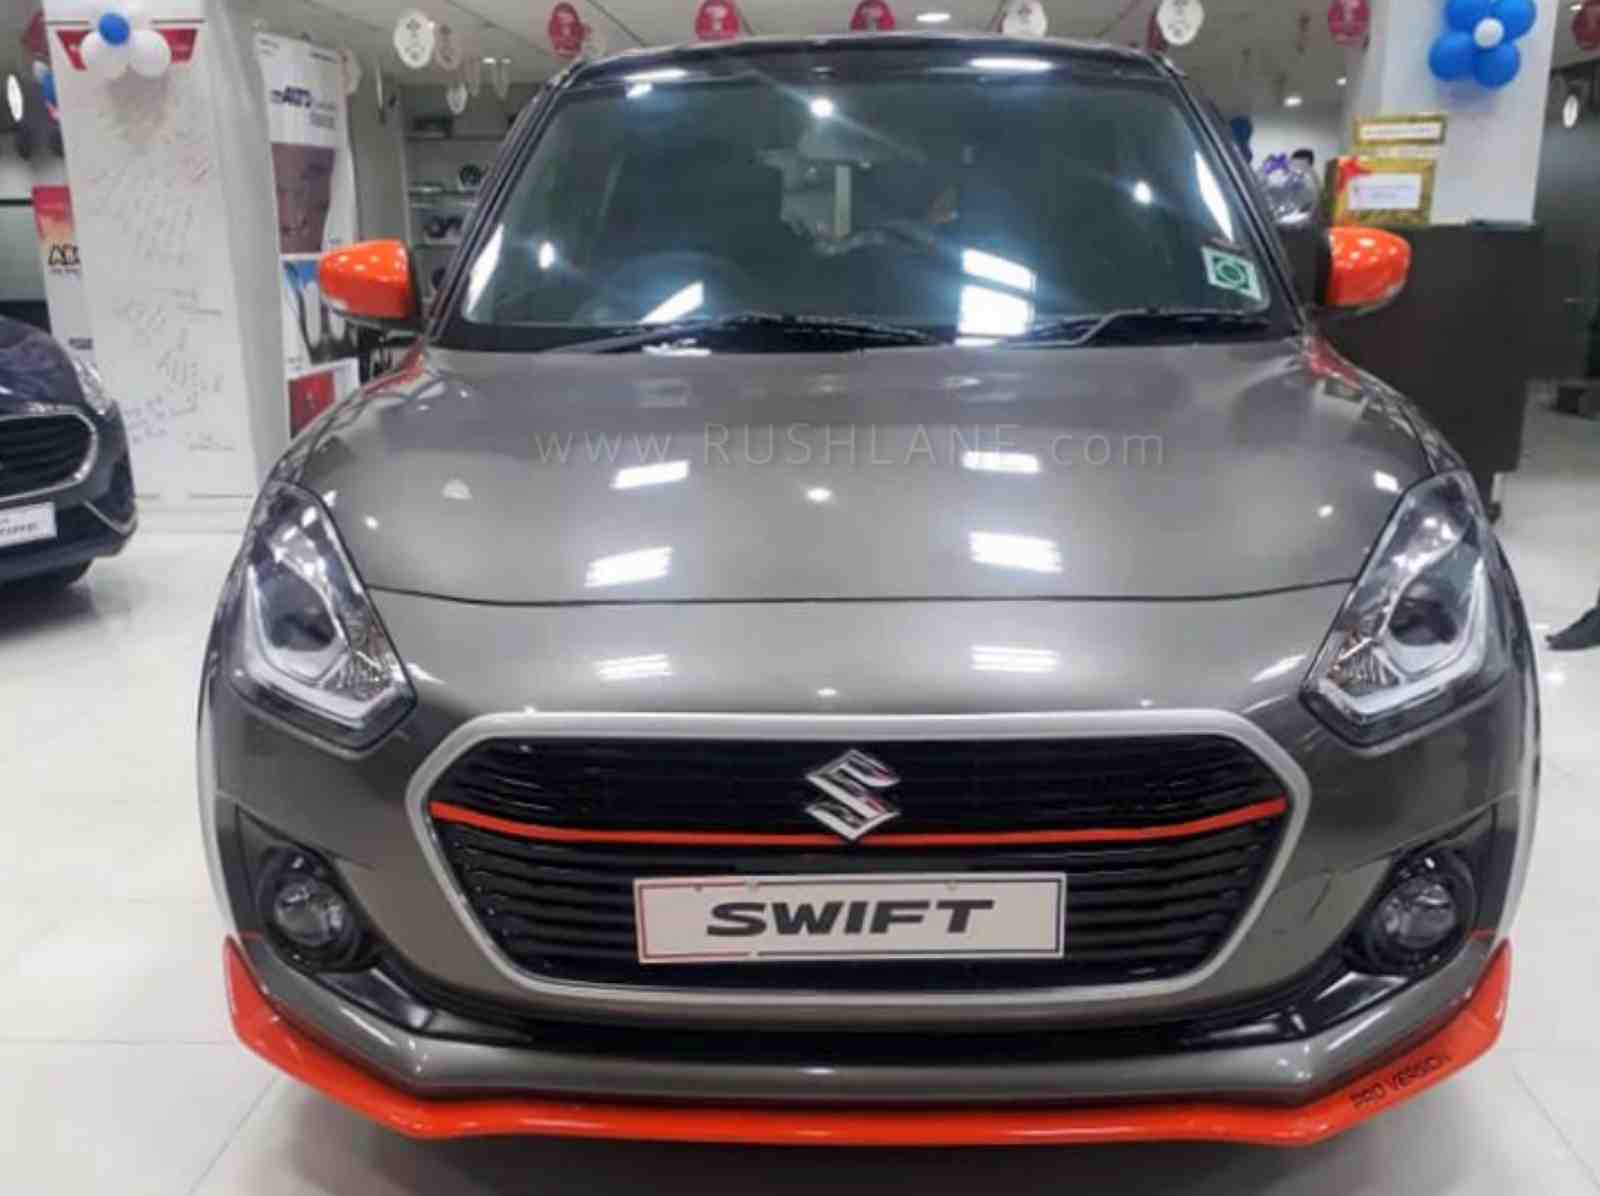 Maruti Swift sales